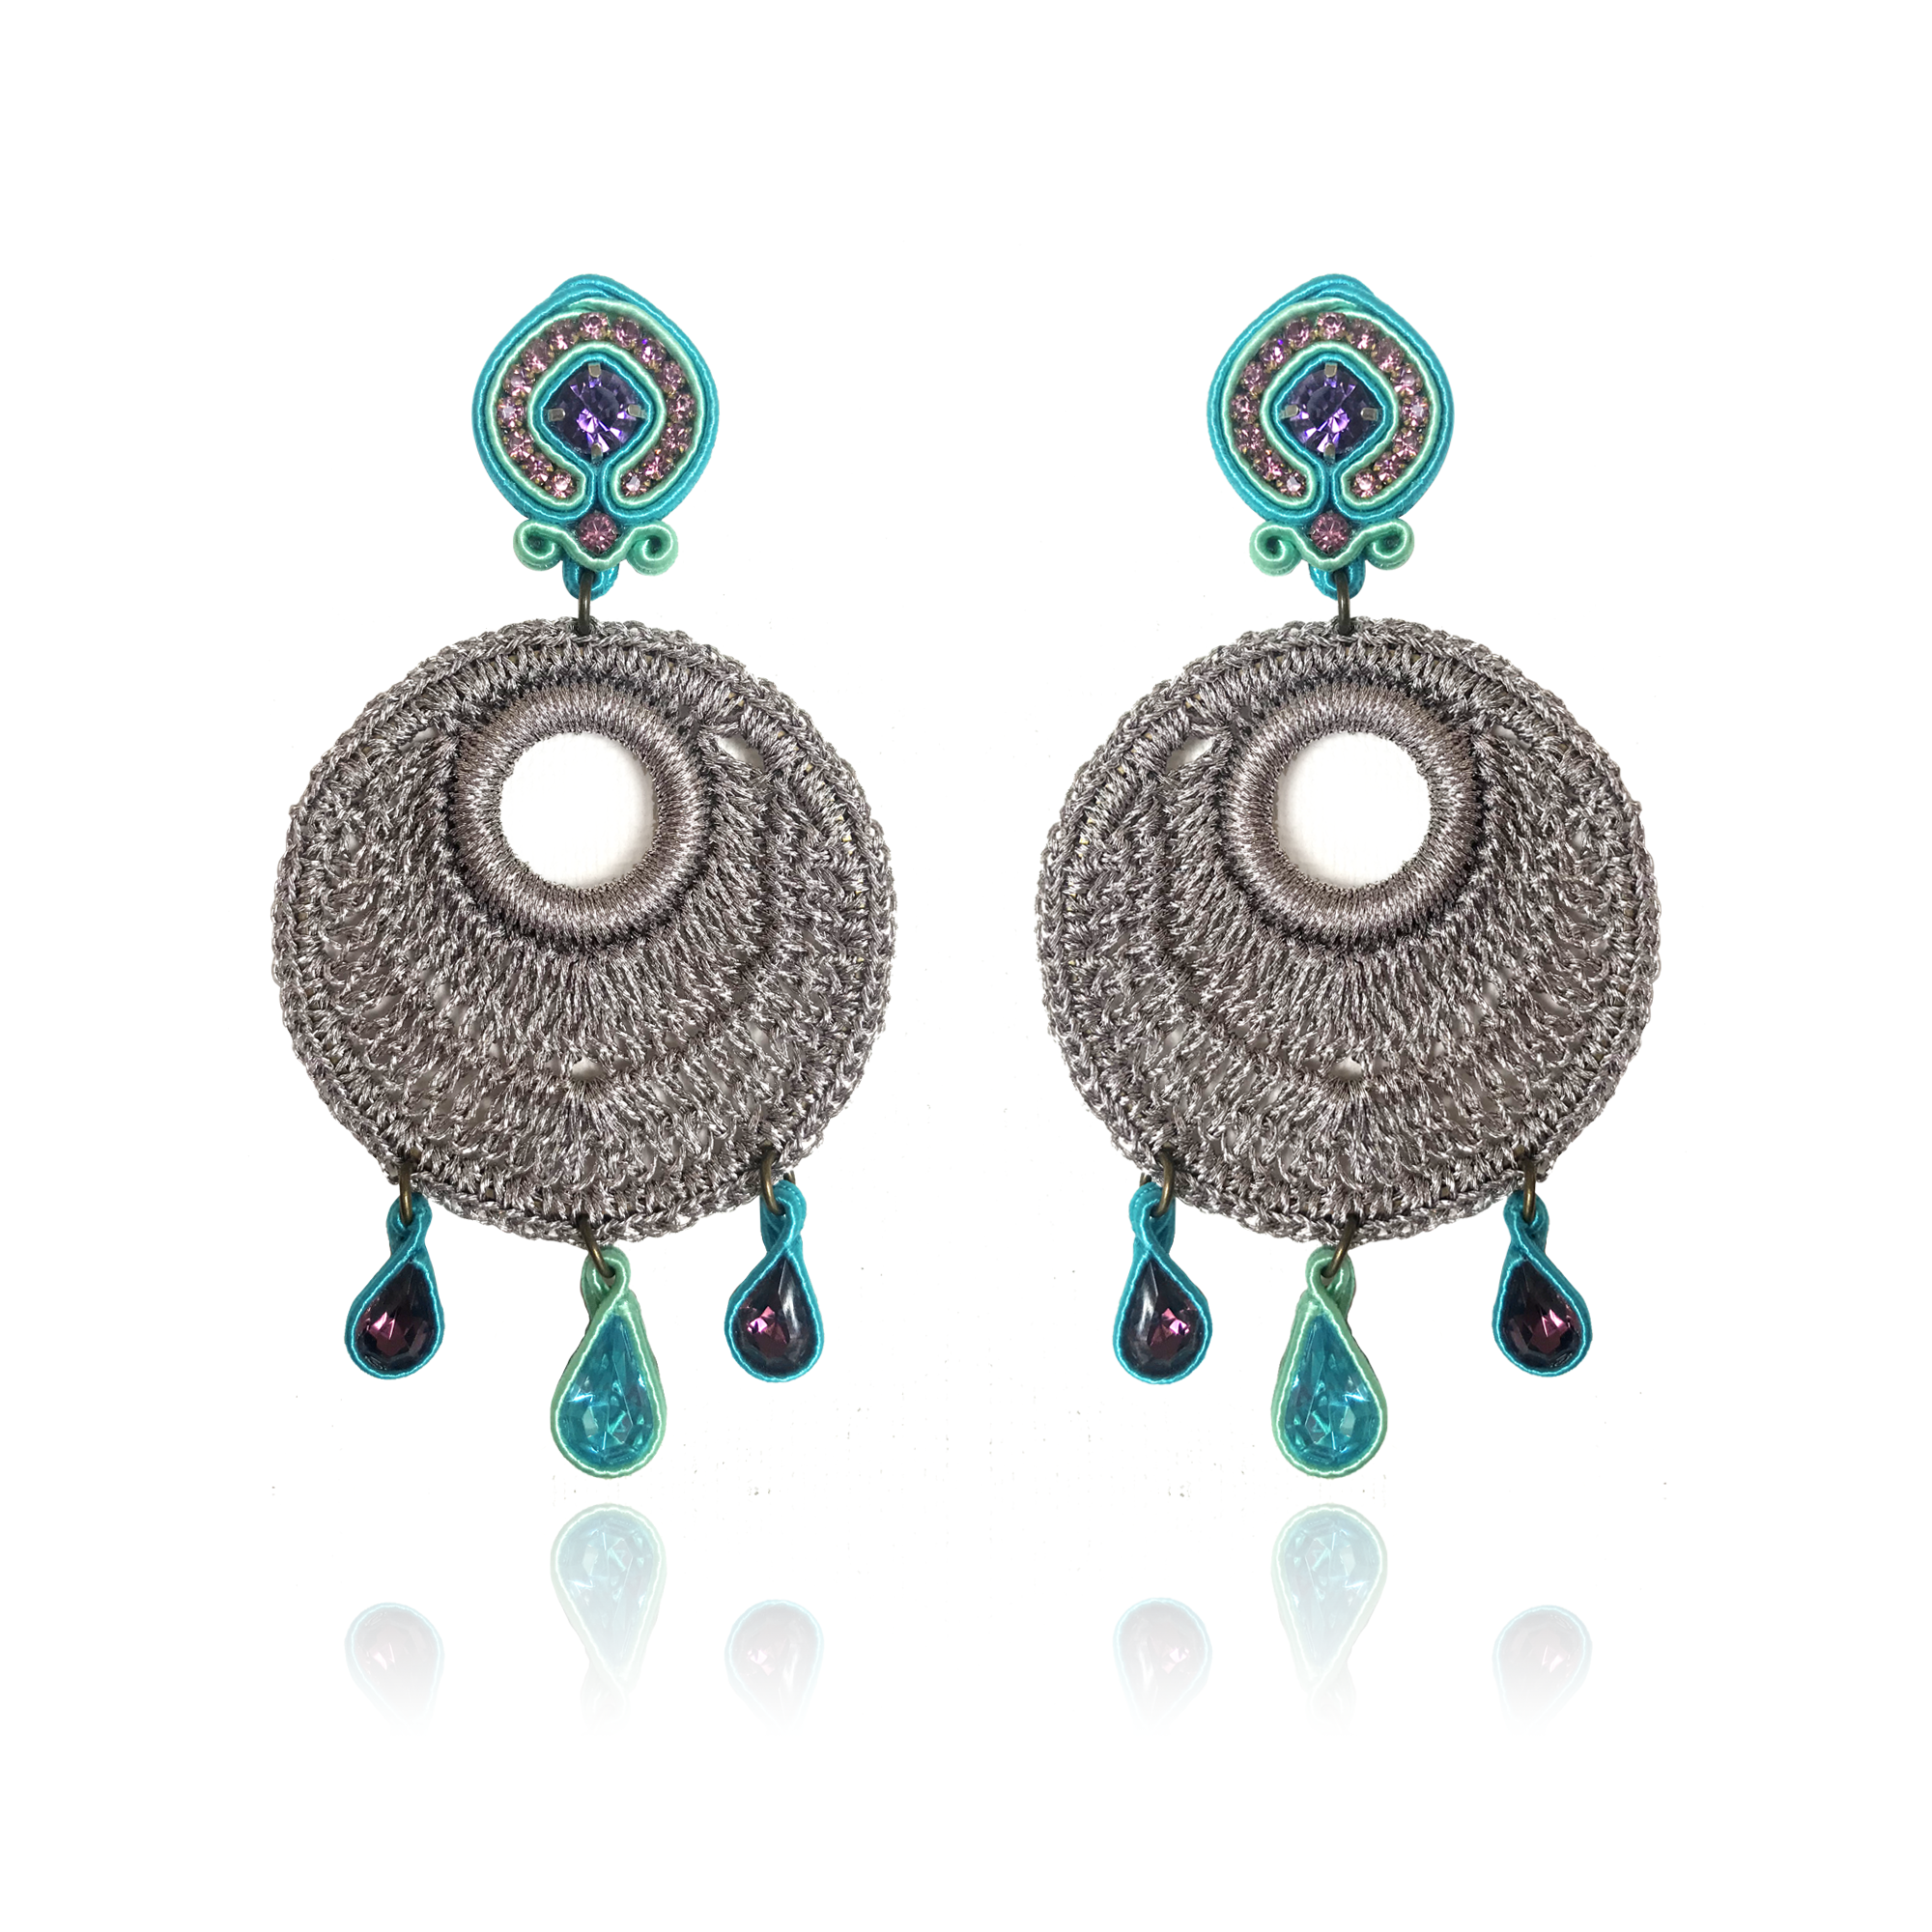 Mandala Medio Acqua Earrings